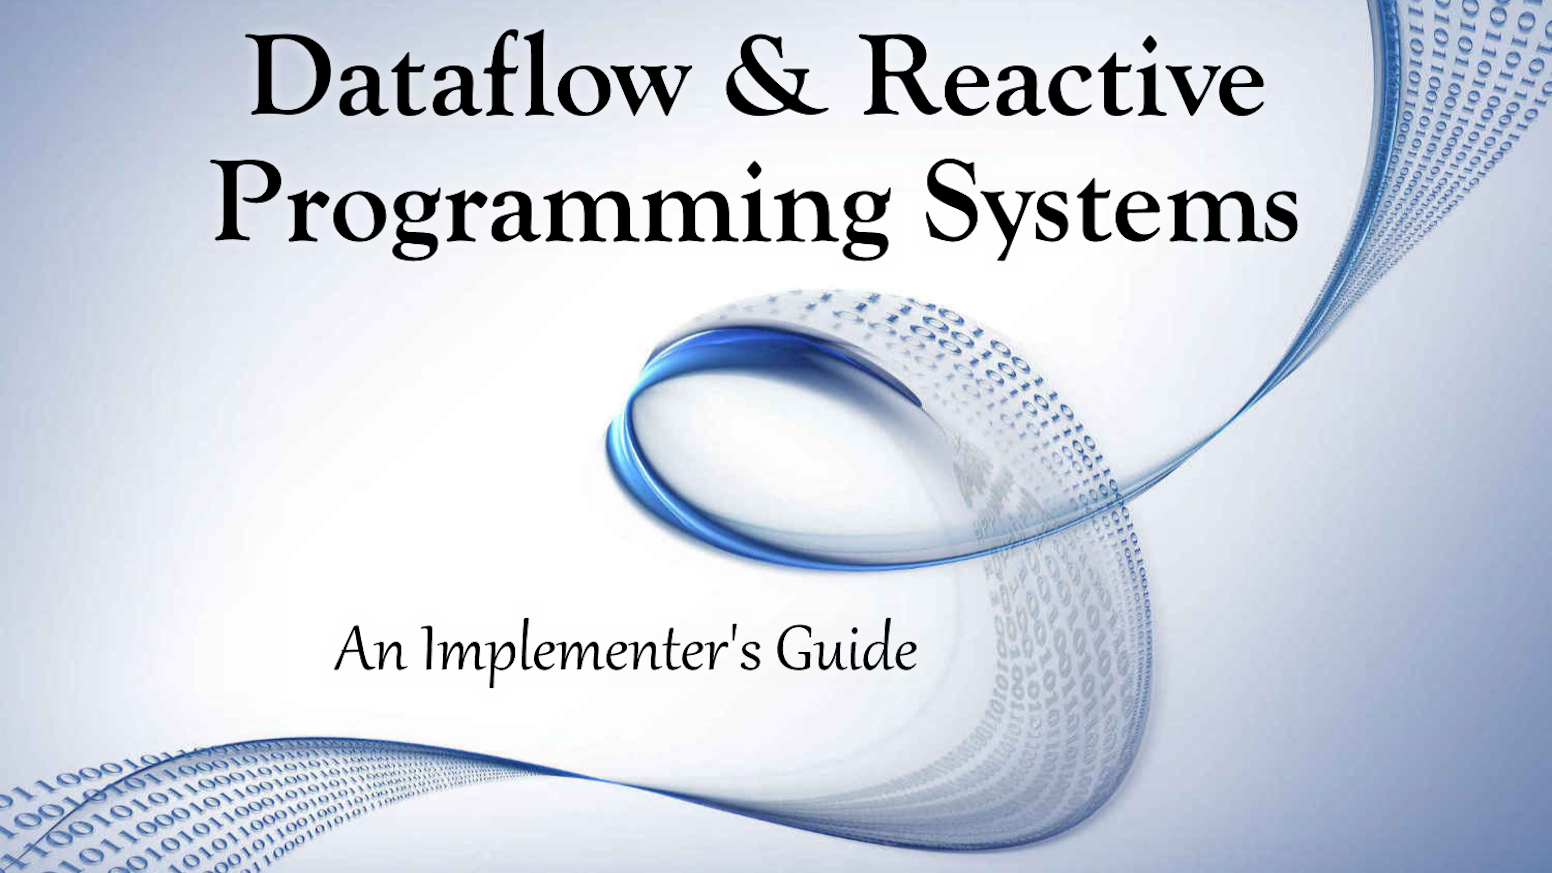 A Practical Handbook on Developing Dataflow-Based Programming Systems